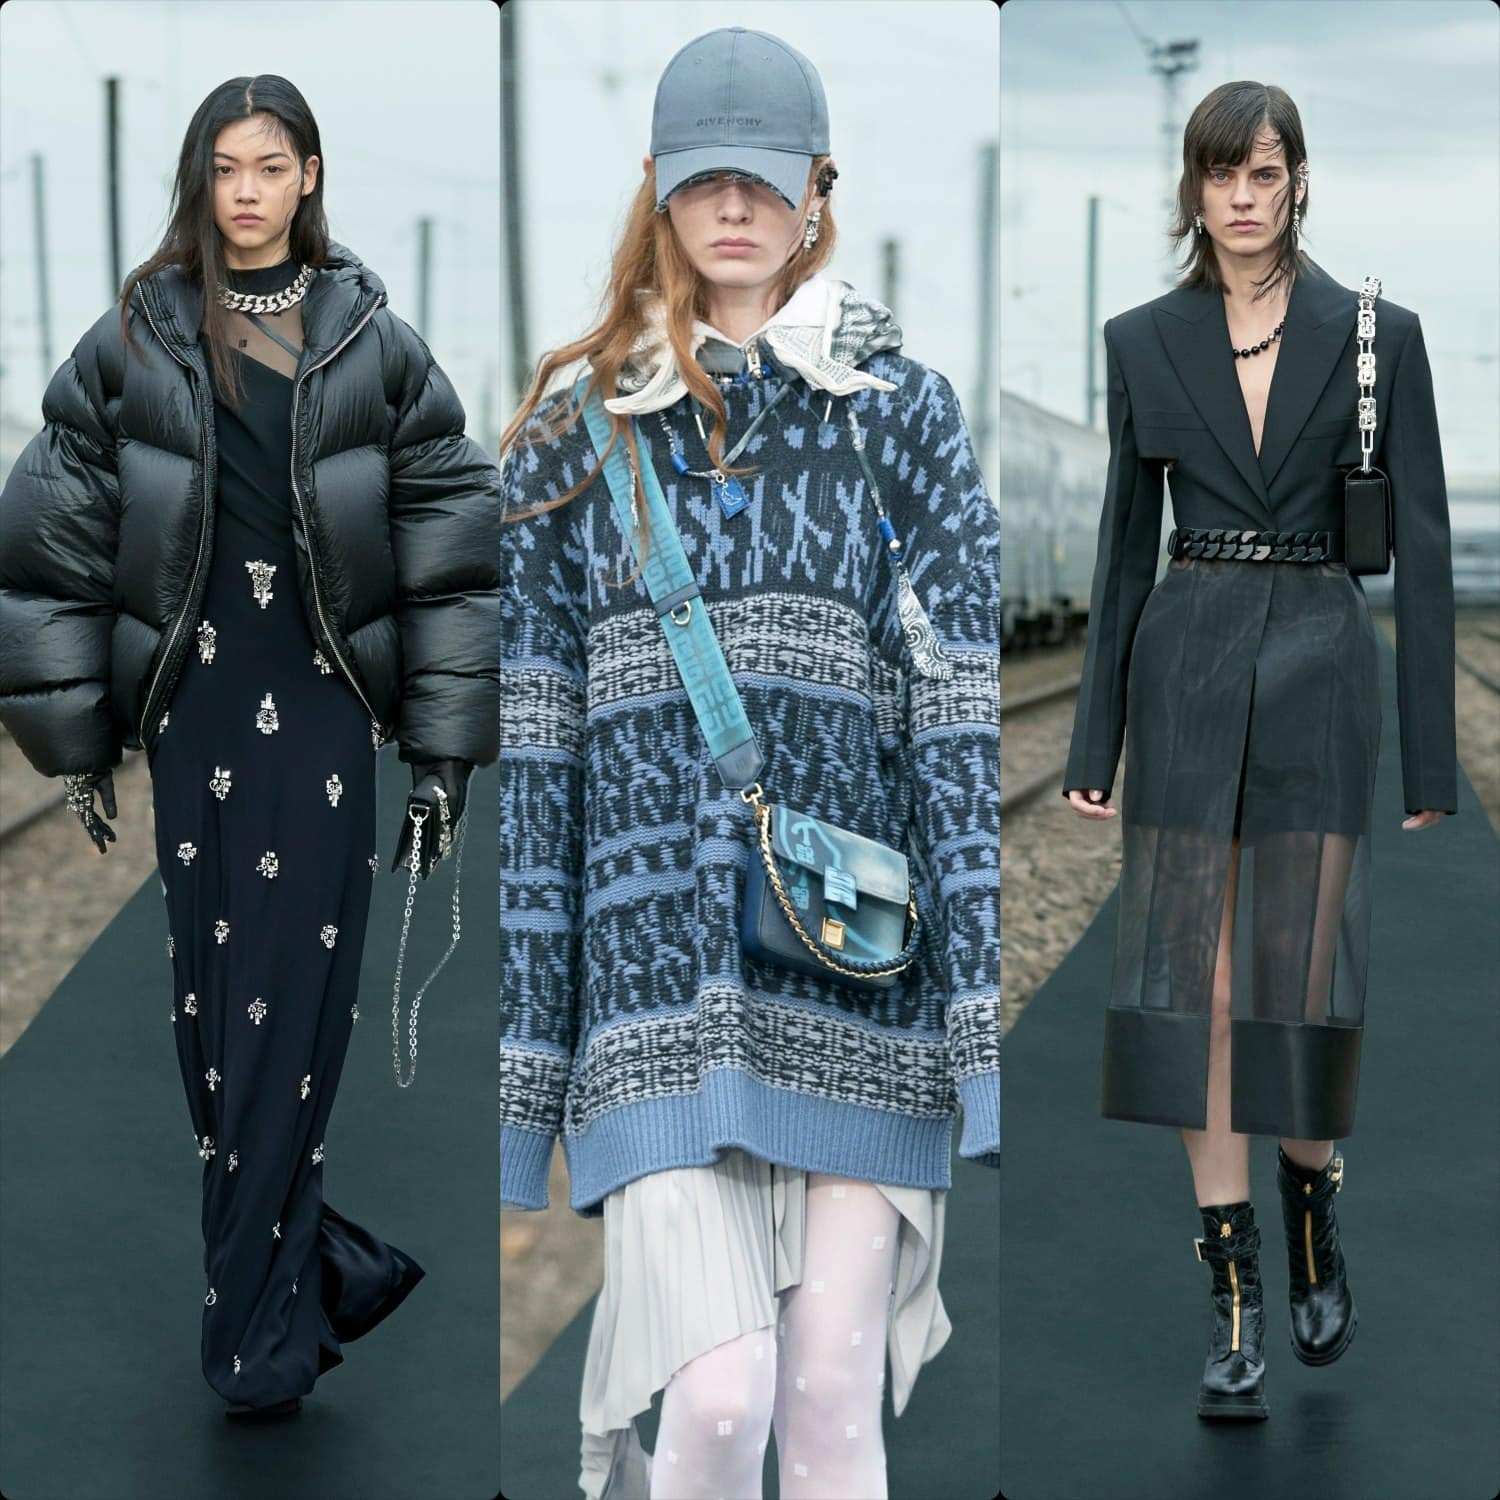 Givenchy Cruise 2022 Resort. RUNWAY MAGAZINE ® Collections. RUNWAY NOW / RUNWAY NEW